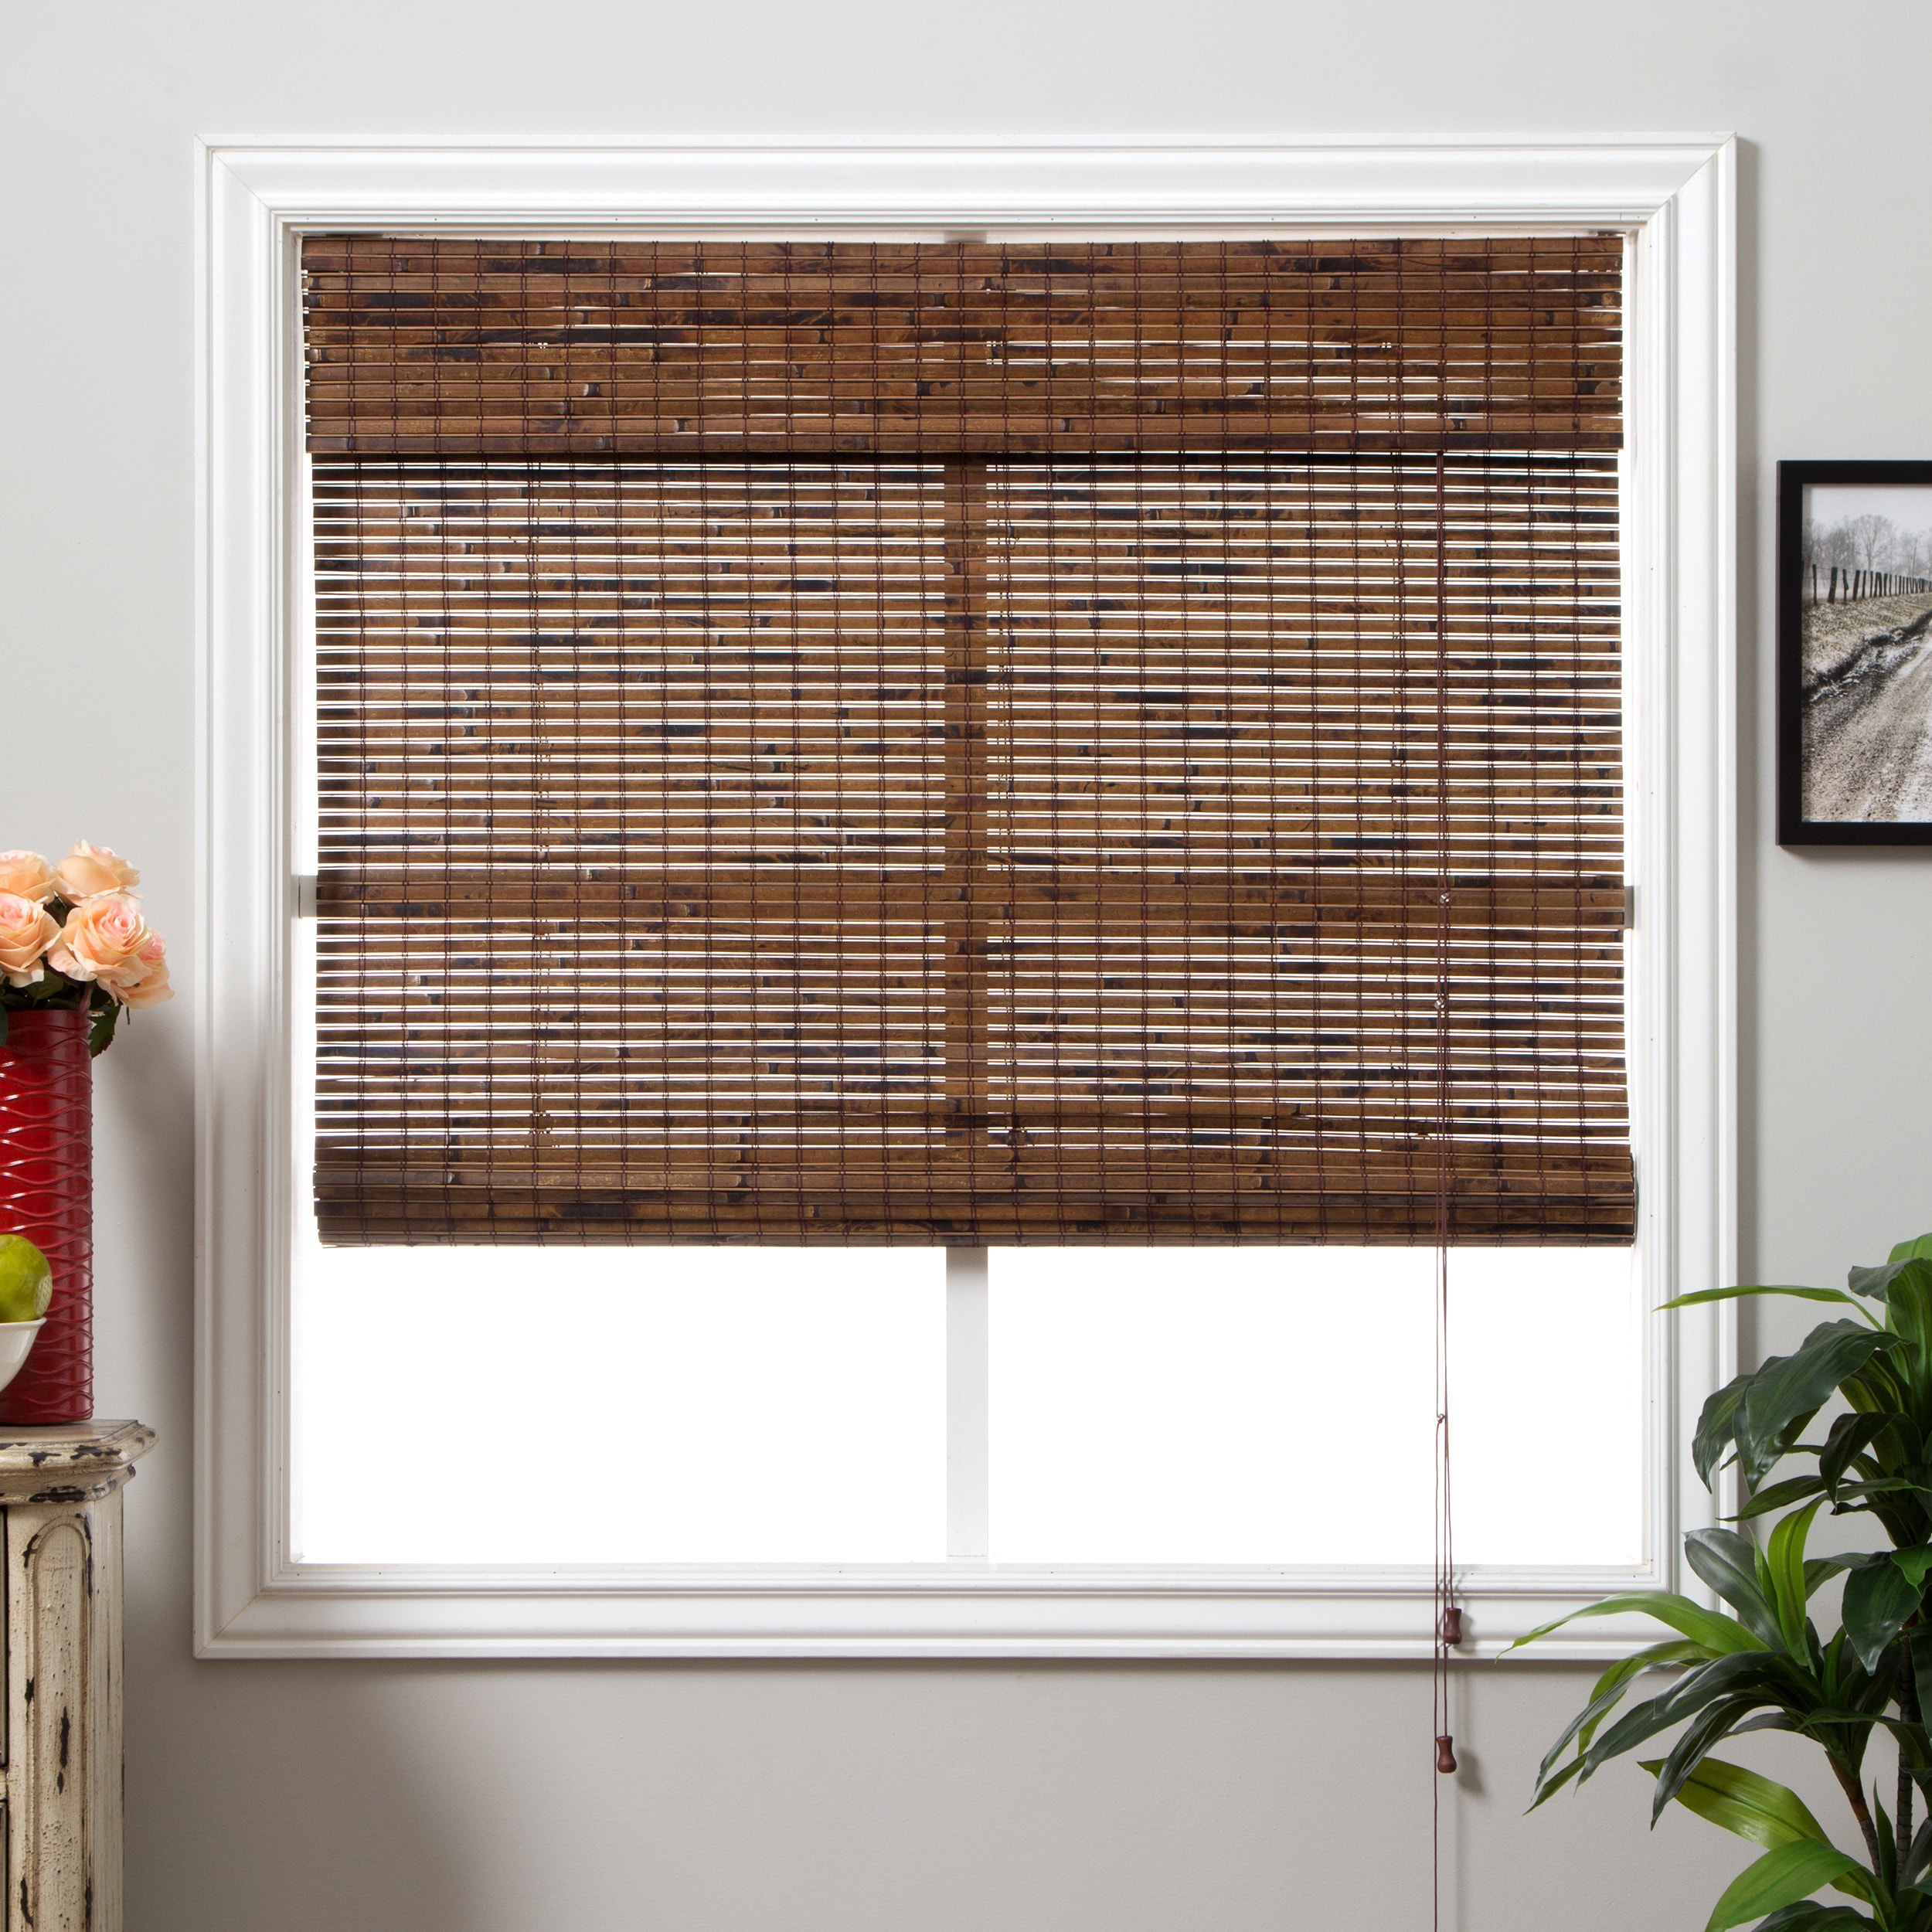 roman for with on valance height free java over overstock shade inch shipping product garden vintage orders arlo home bamboo blinds length